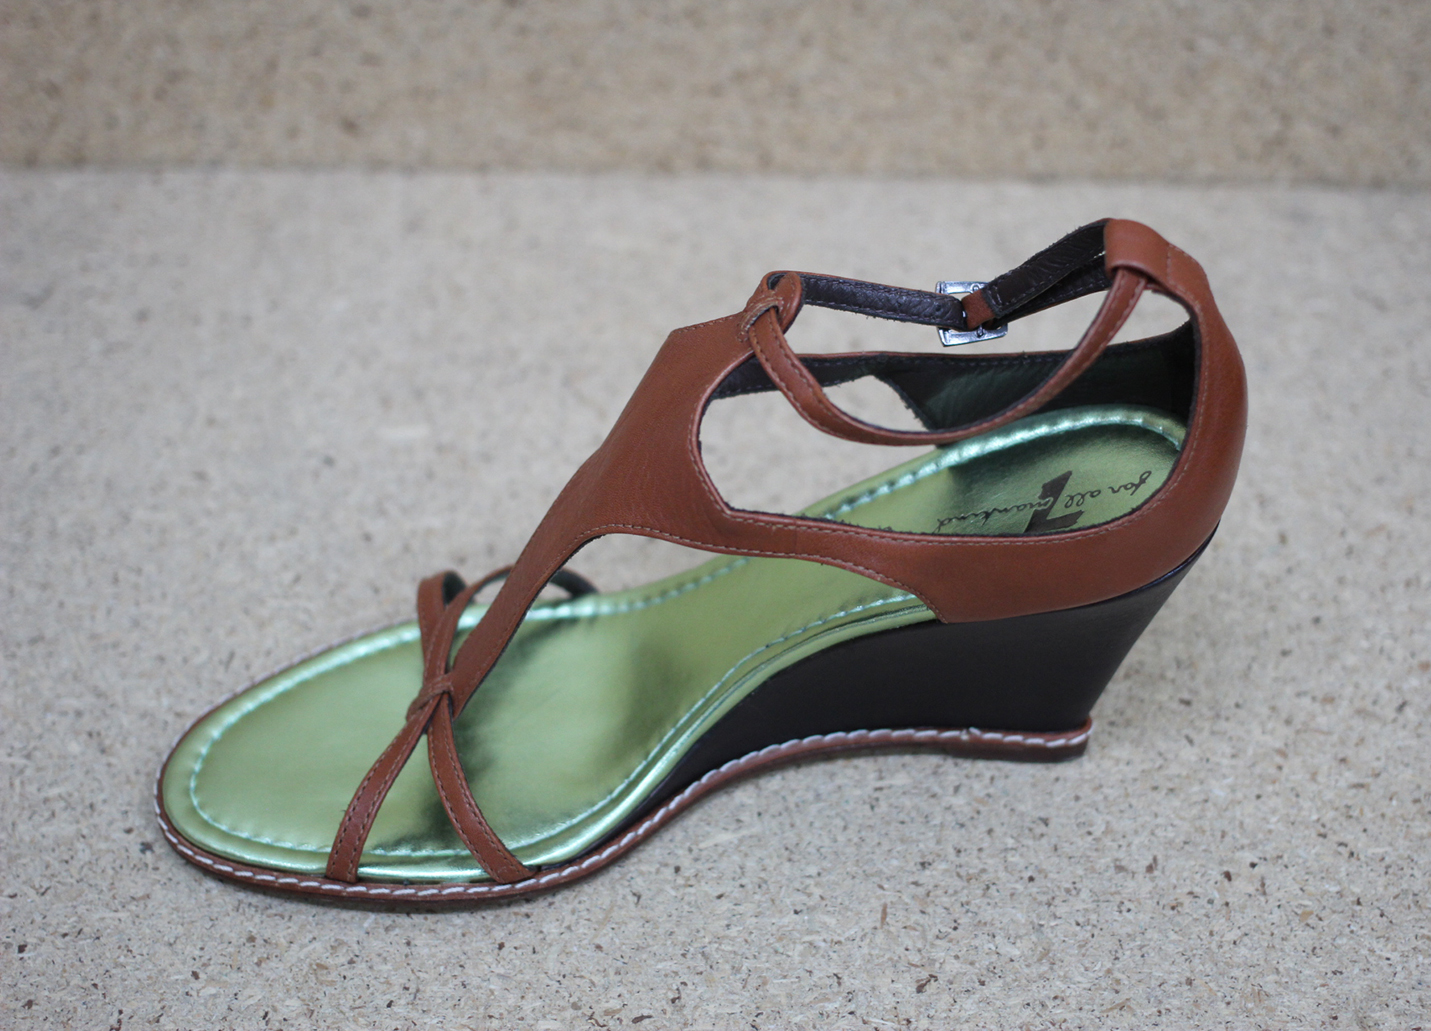 7 For Sandals All Wedge Mankind 0vNOmw8n